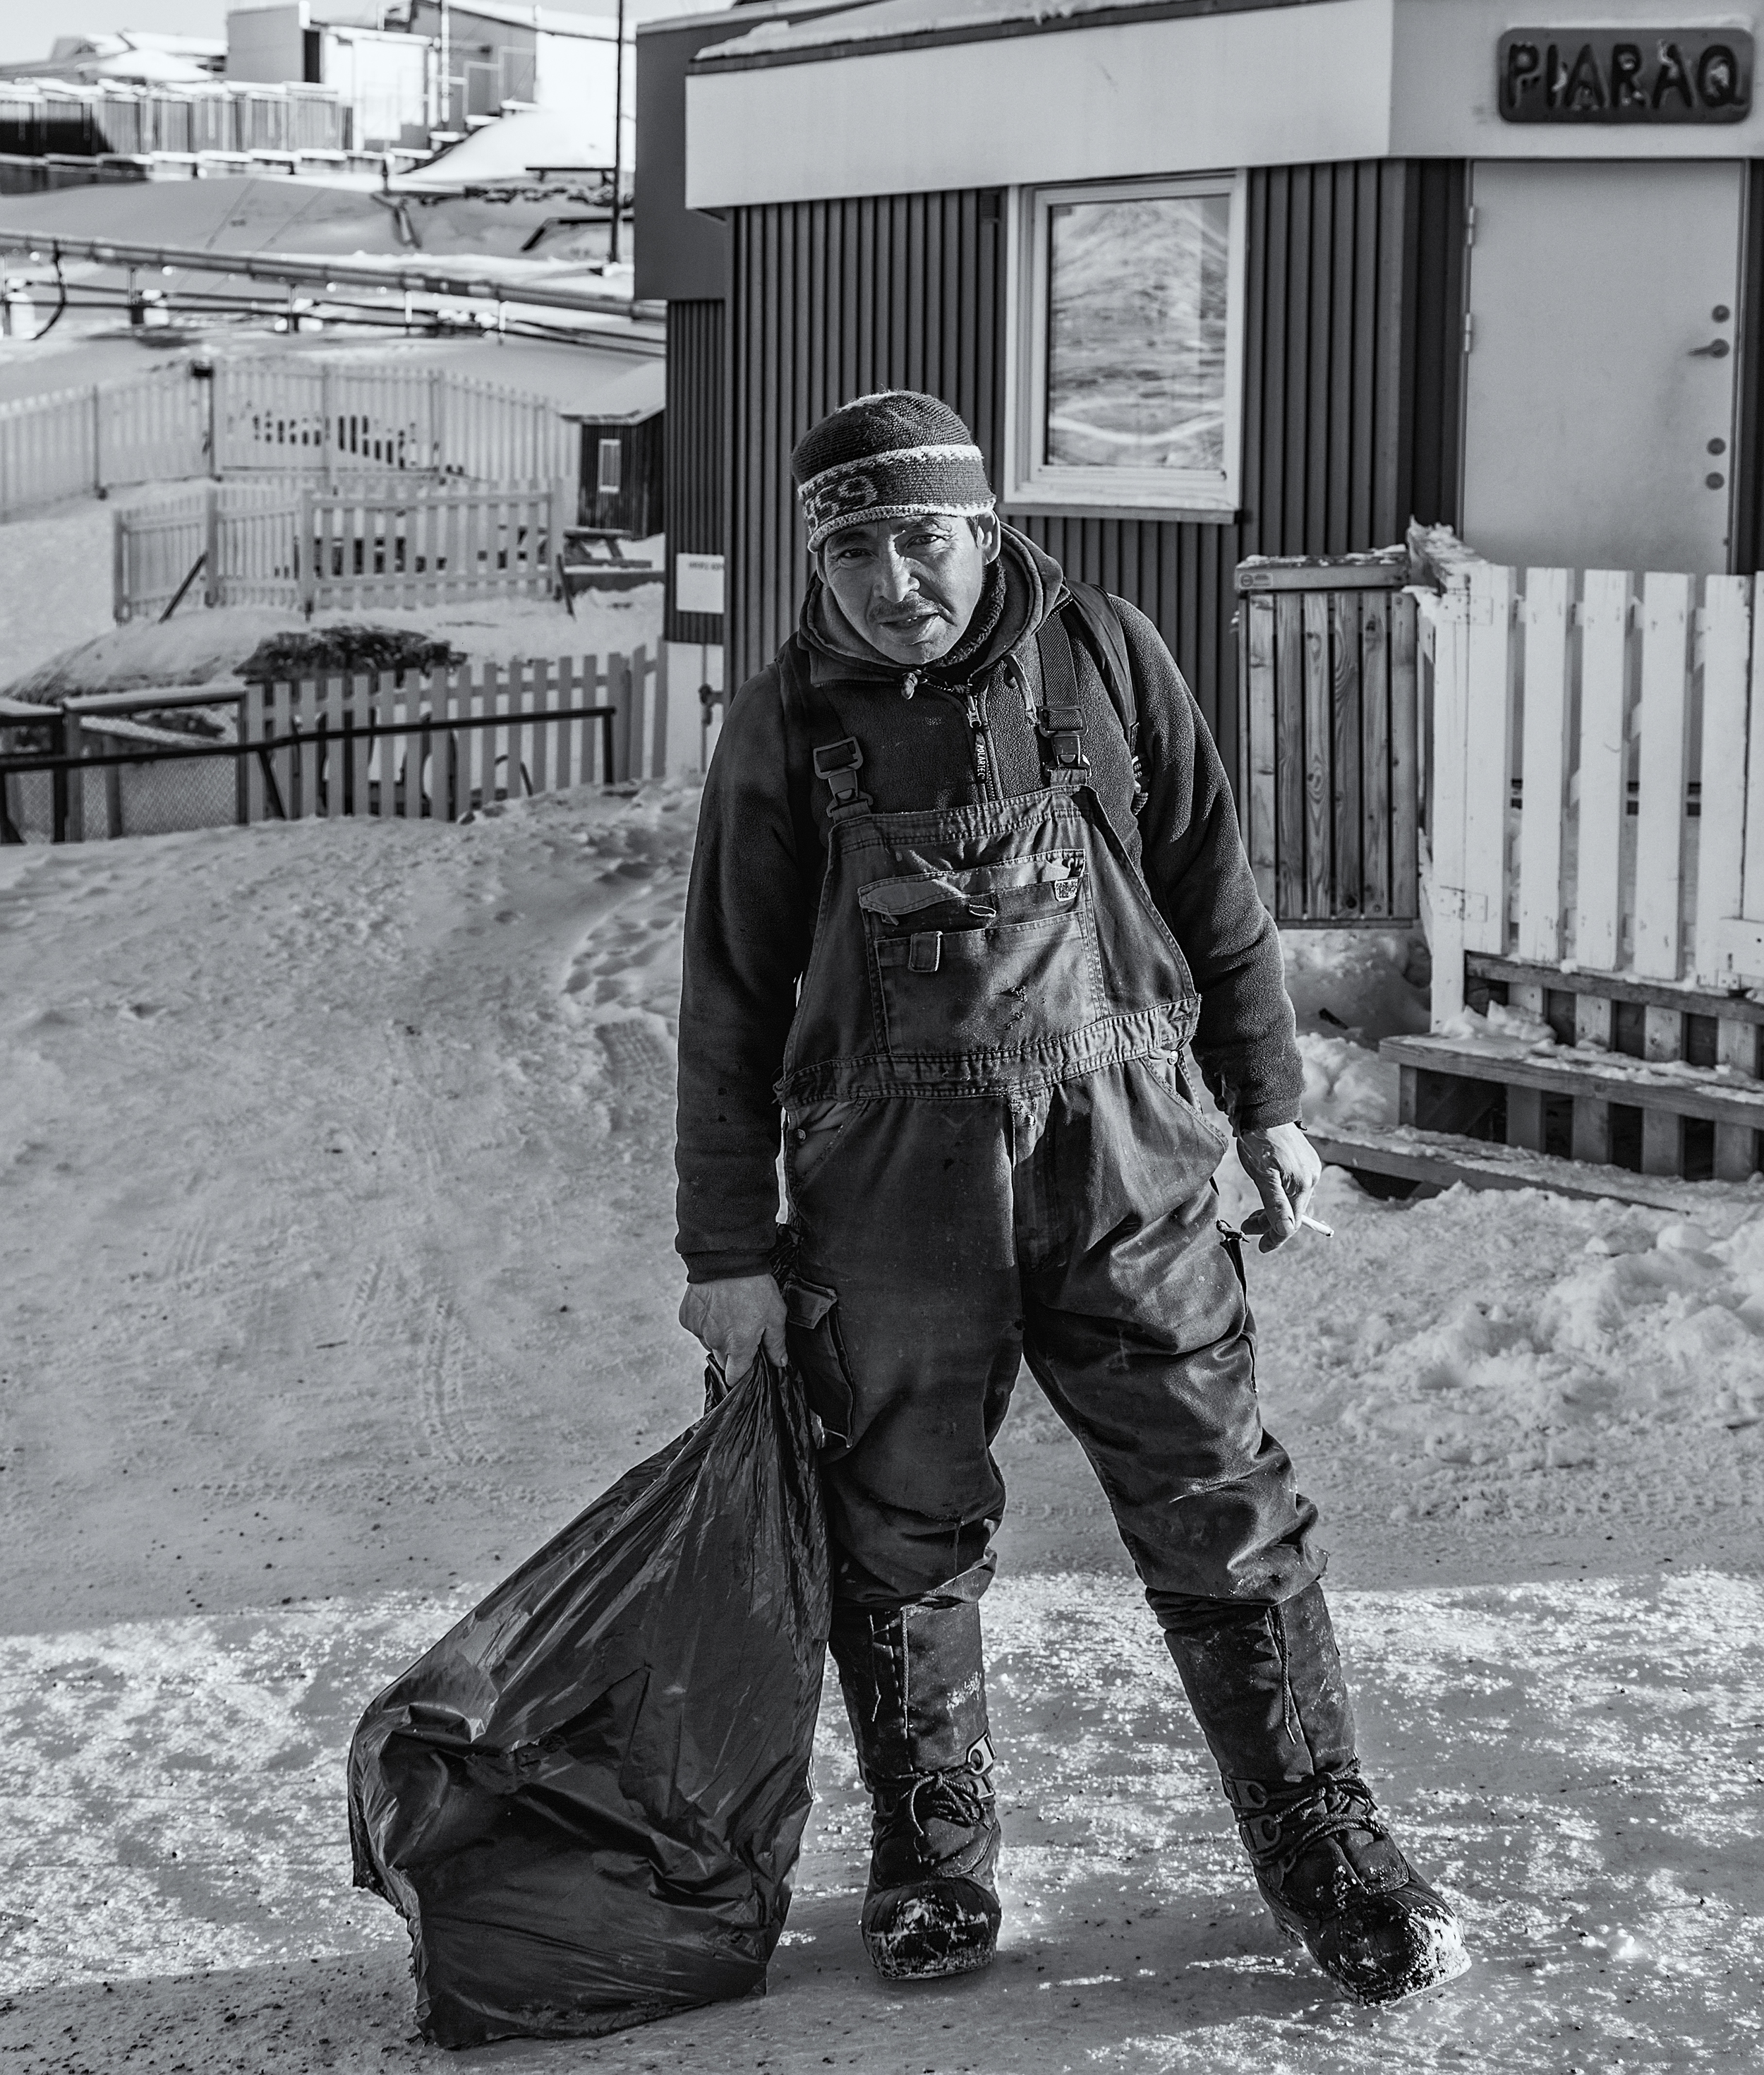 Local Ilulissat Greenlander with his groceries.